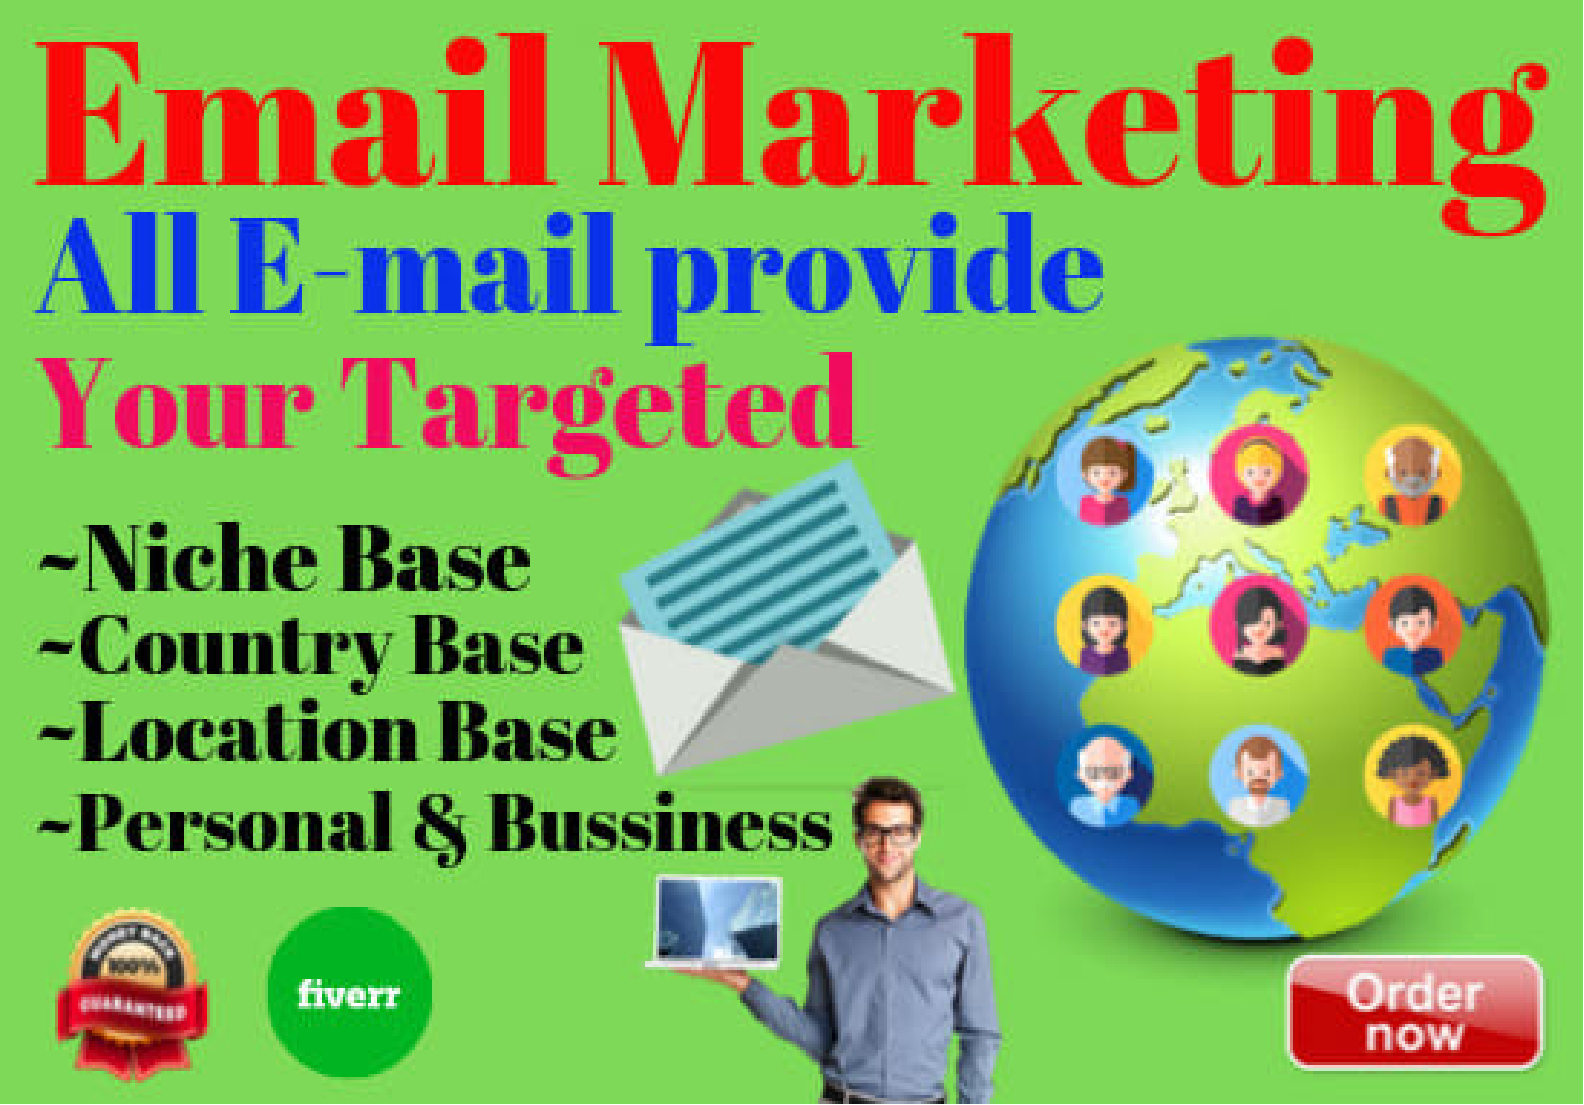 I will collect b2b, b2c lead generation and build targeted email list